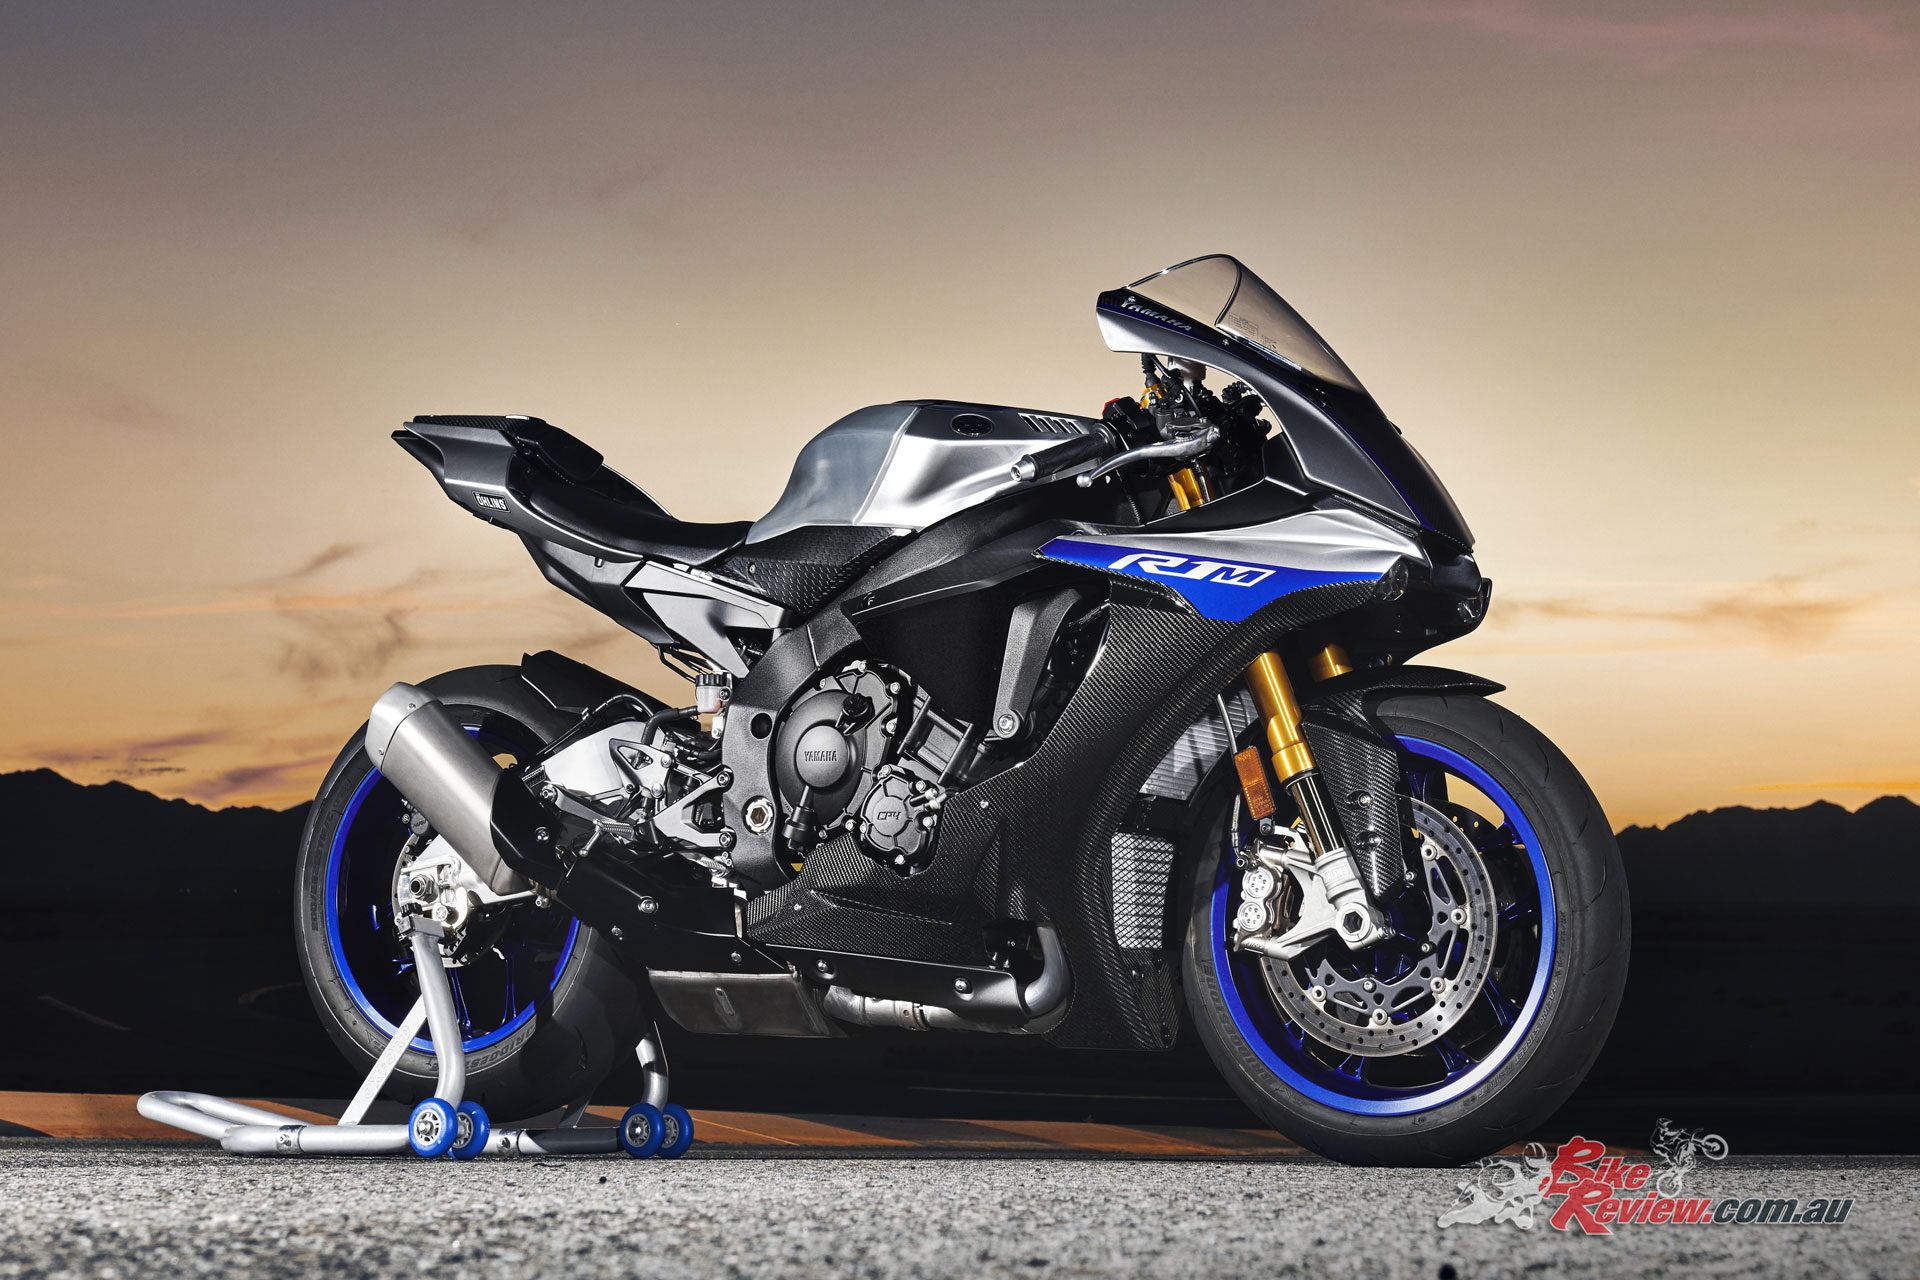 The Yamaha YZF-R1M receives an update for 2018